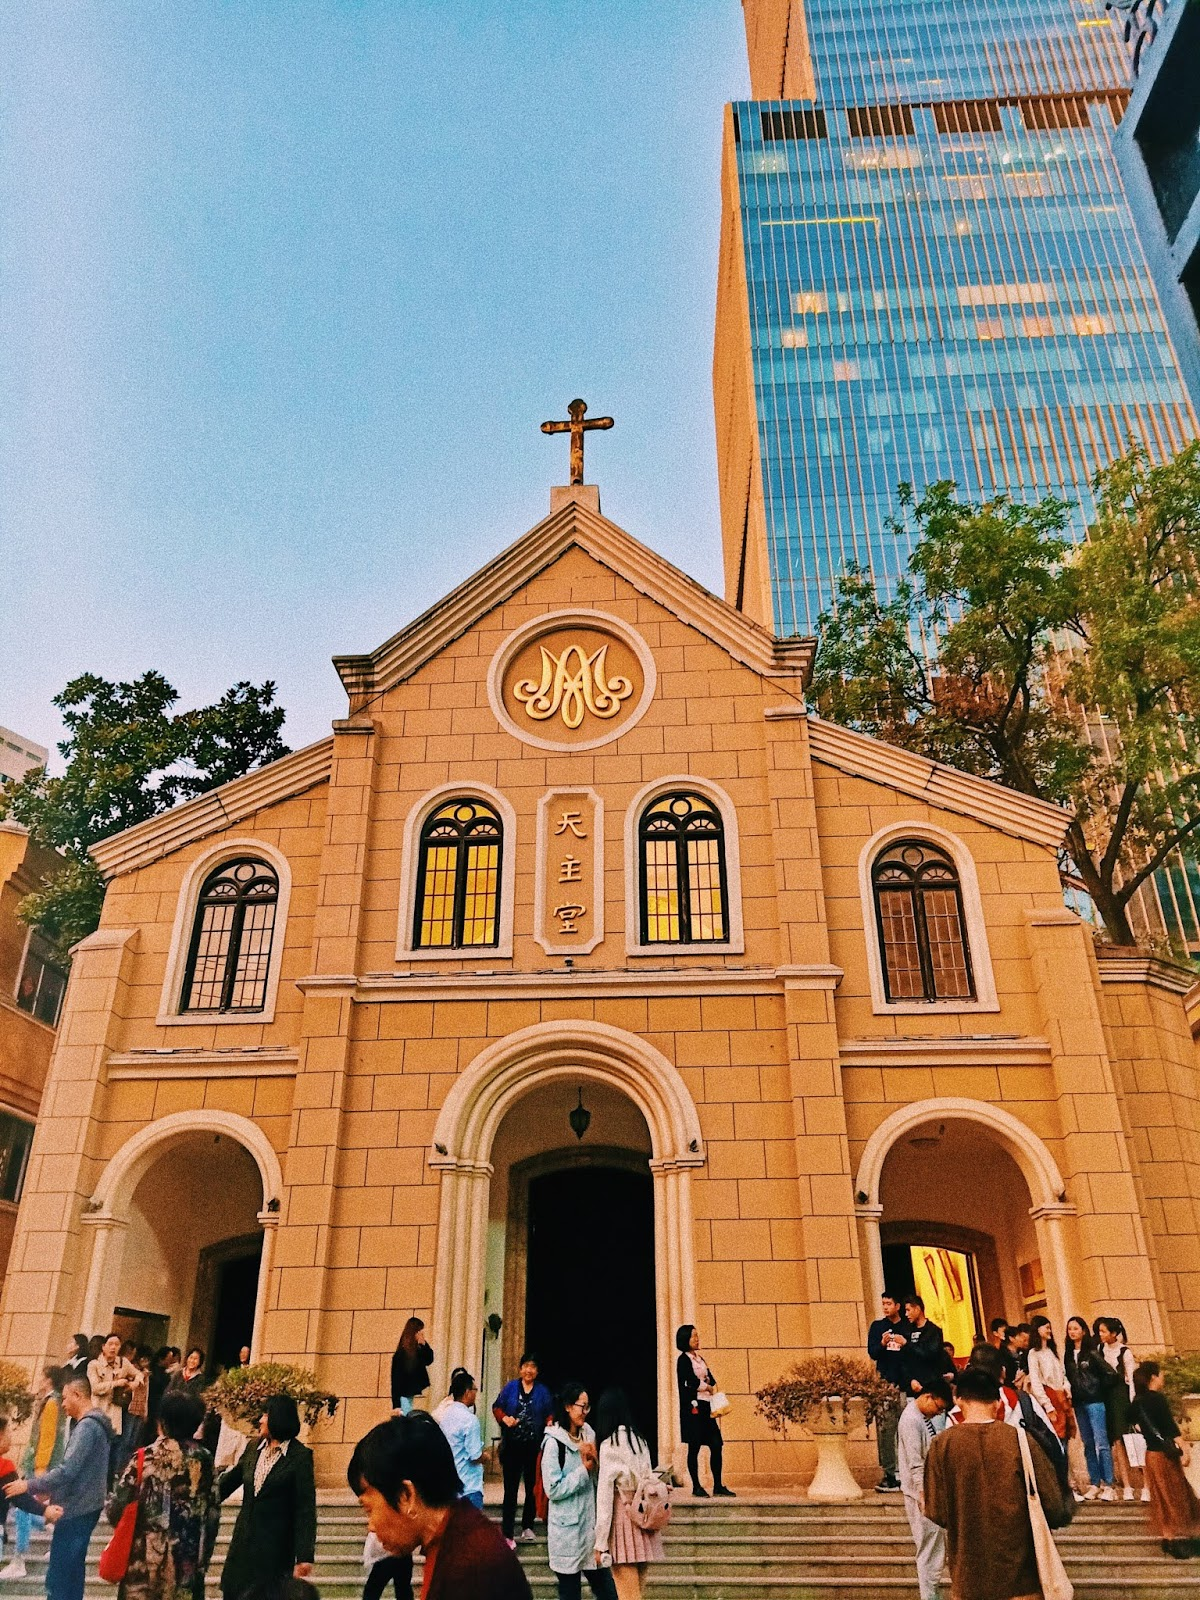 Cathedral of Immaculate Conception, Nanjing - 圣母无染原罪始胎堂